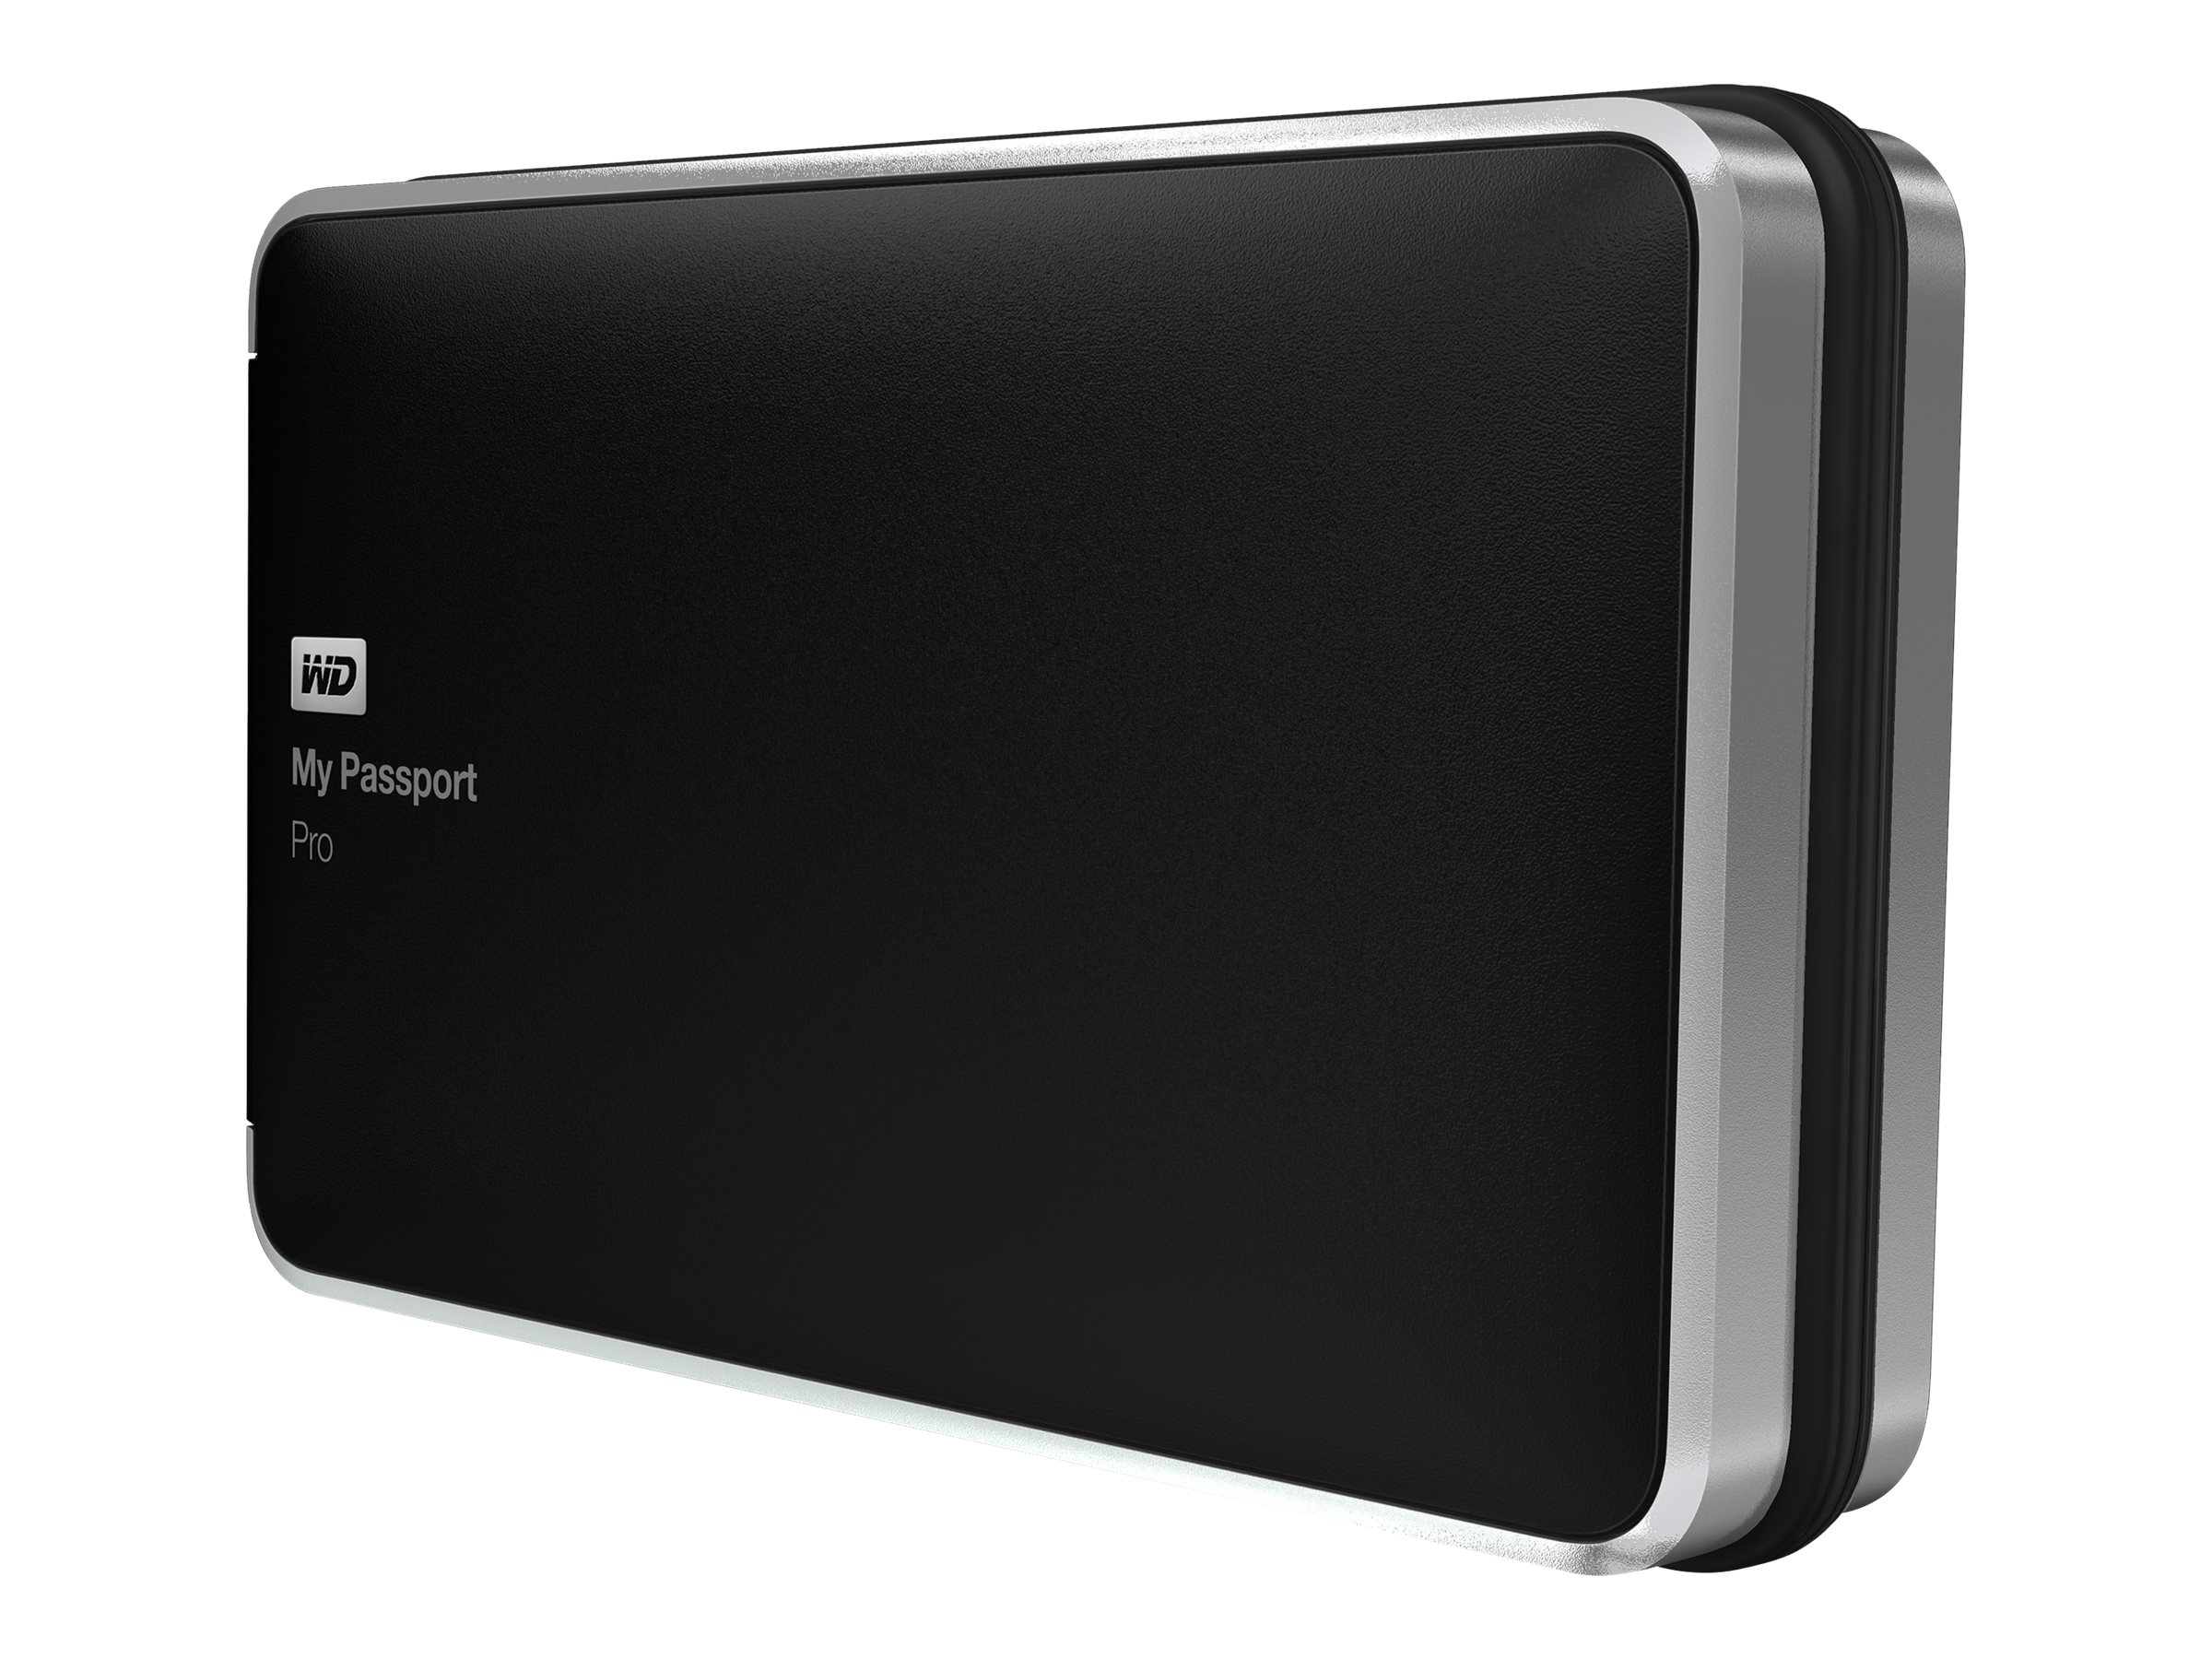 WD 2TB My Passport Pro ThunderBolt RAID Storage, WDBRMP0020DBK-NESN, 16958715, Hard Drives - External